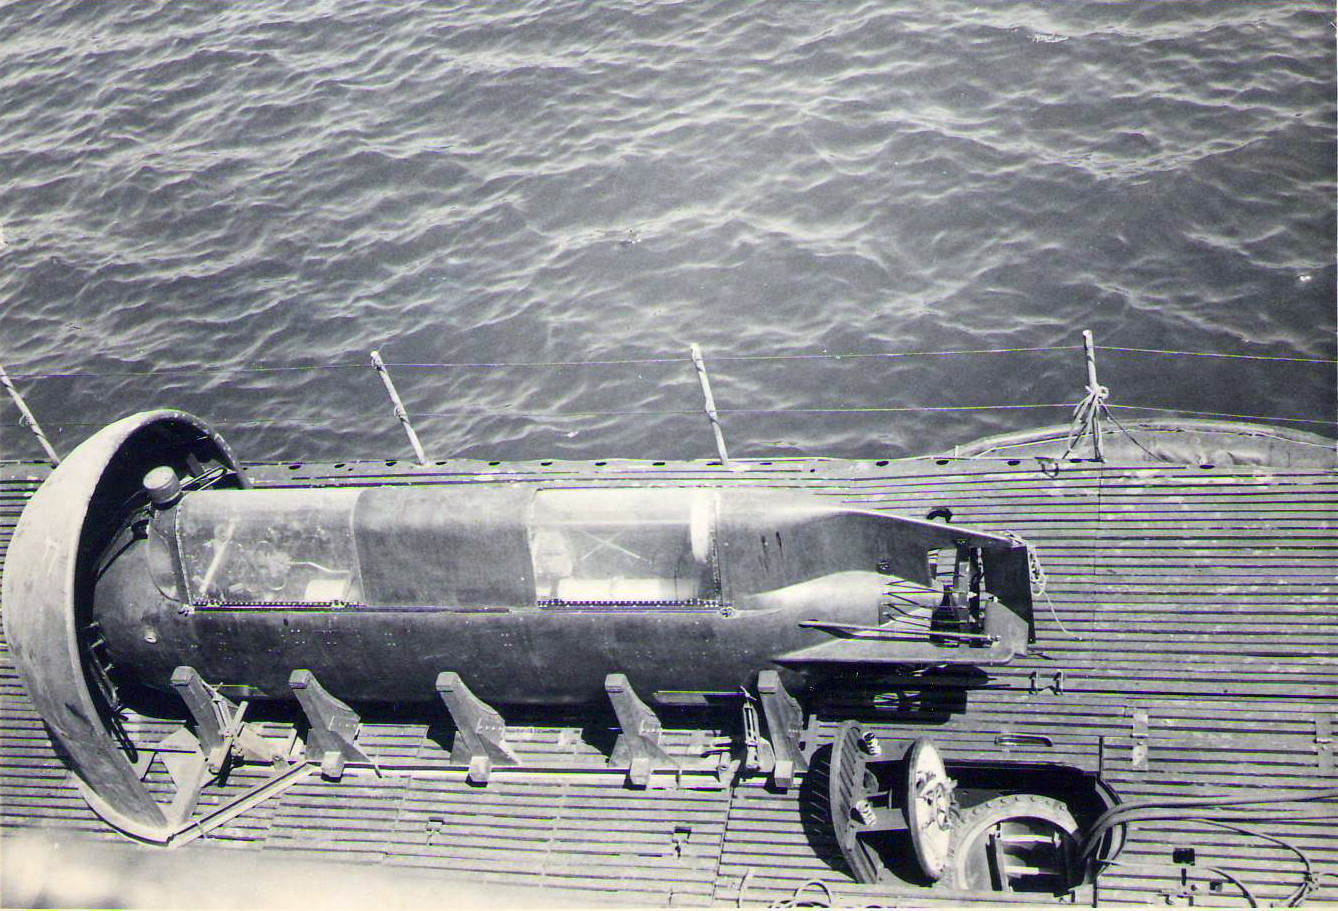 1969 Subic Bay US Sub with mini-sub